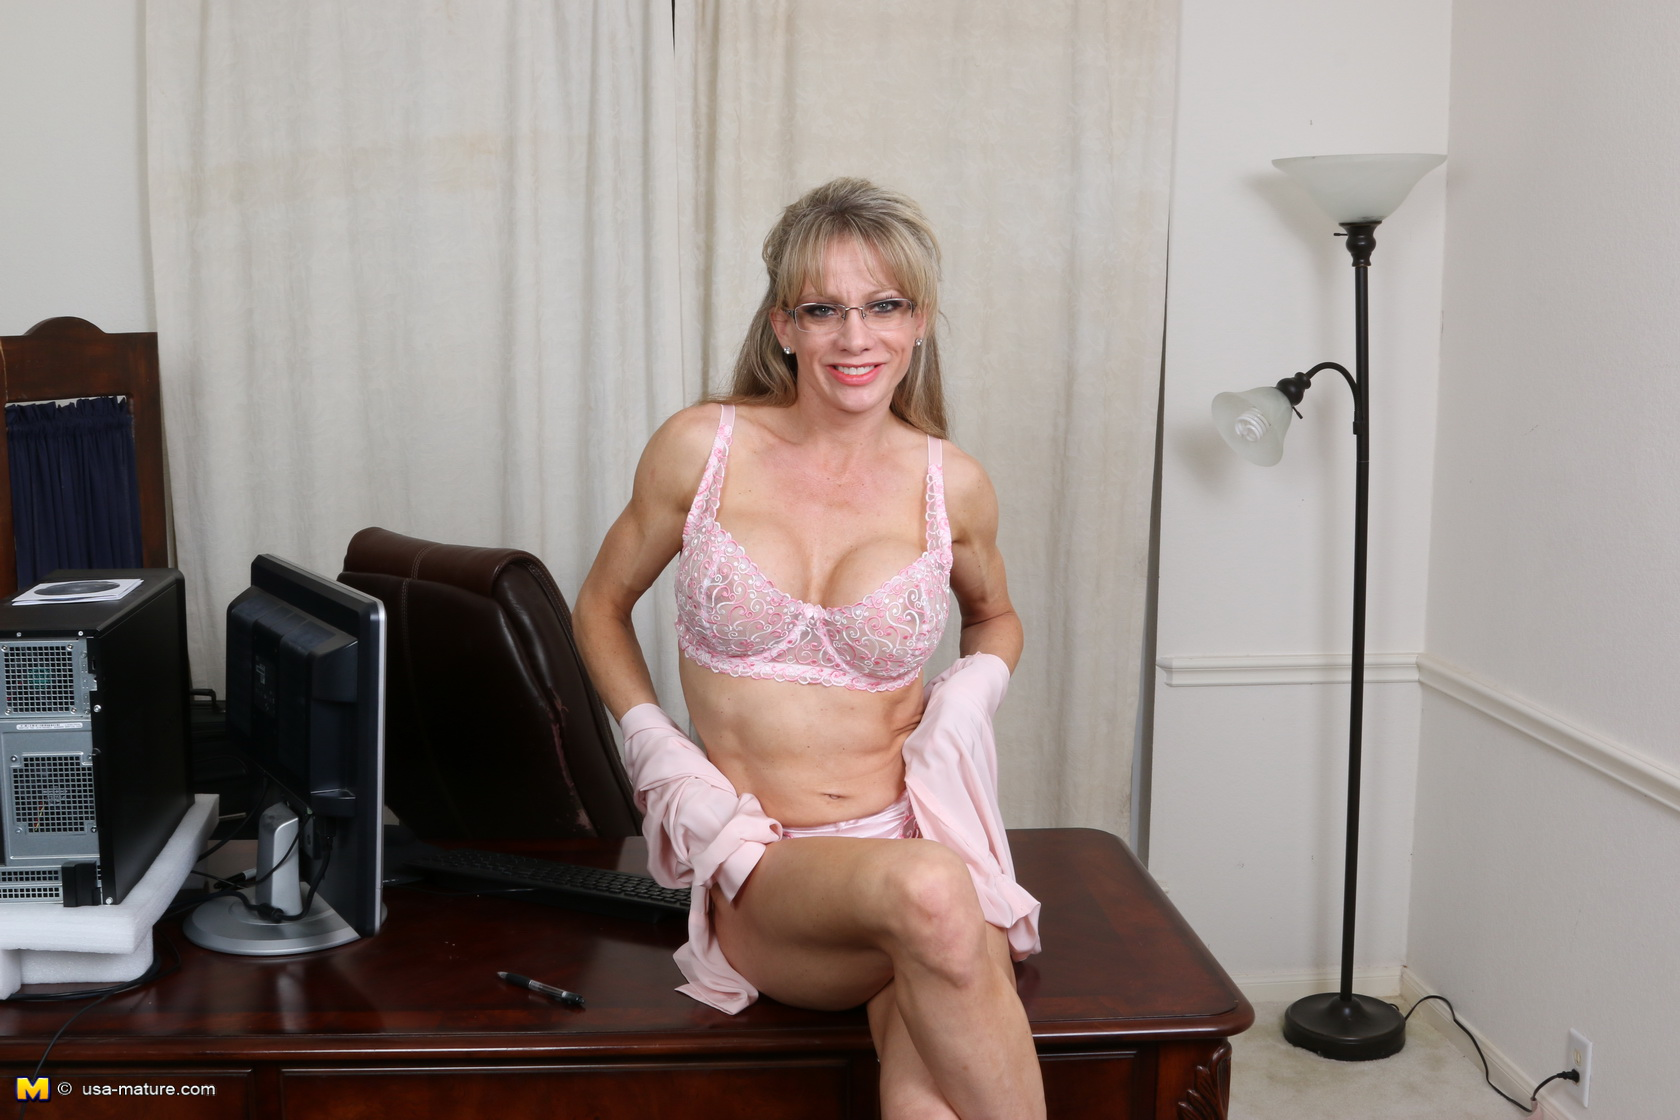 hot office granny performing a homemade striptease on her working desk